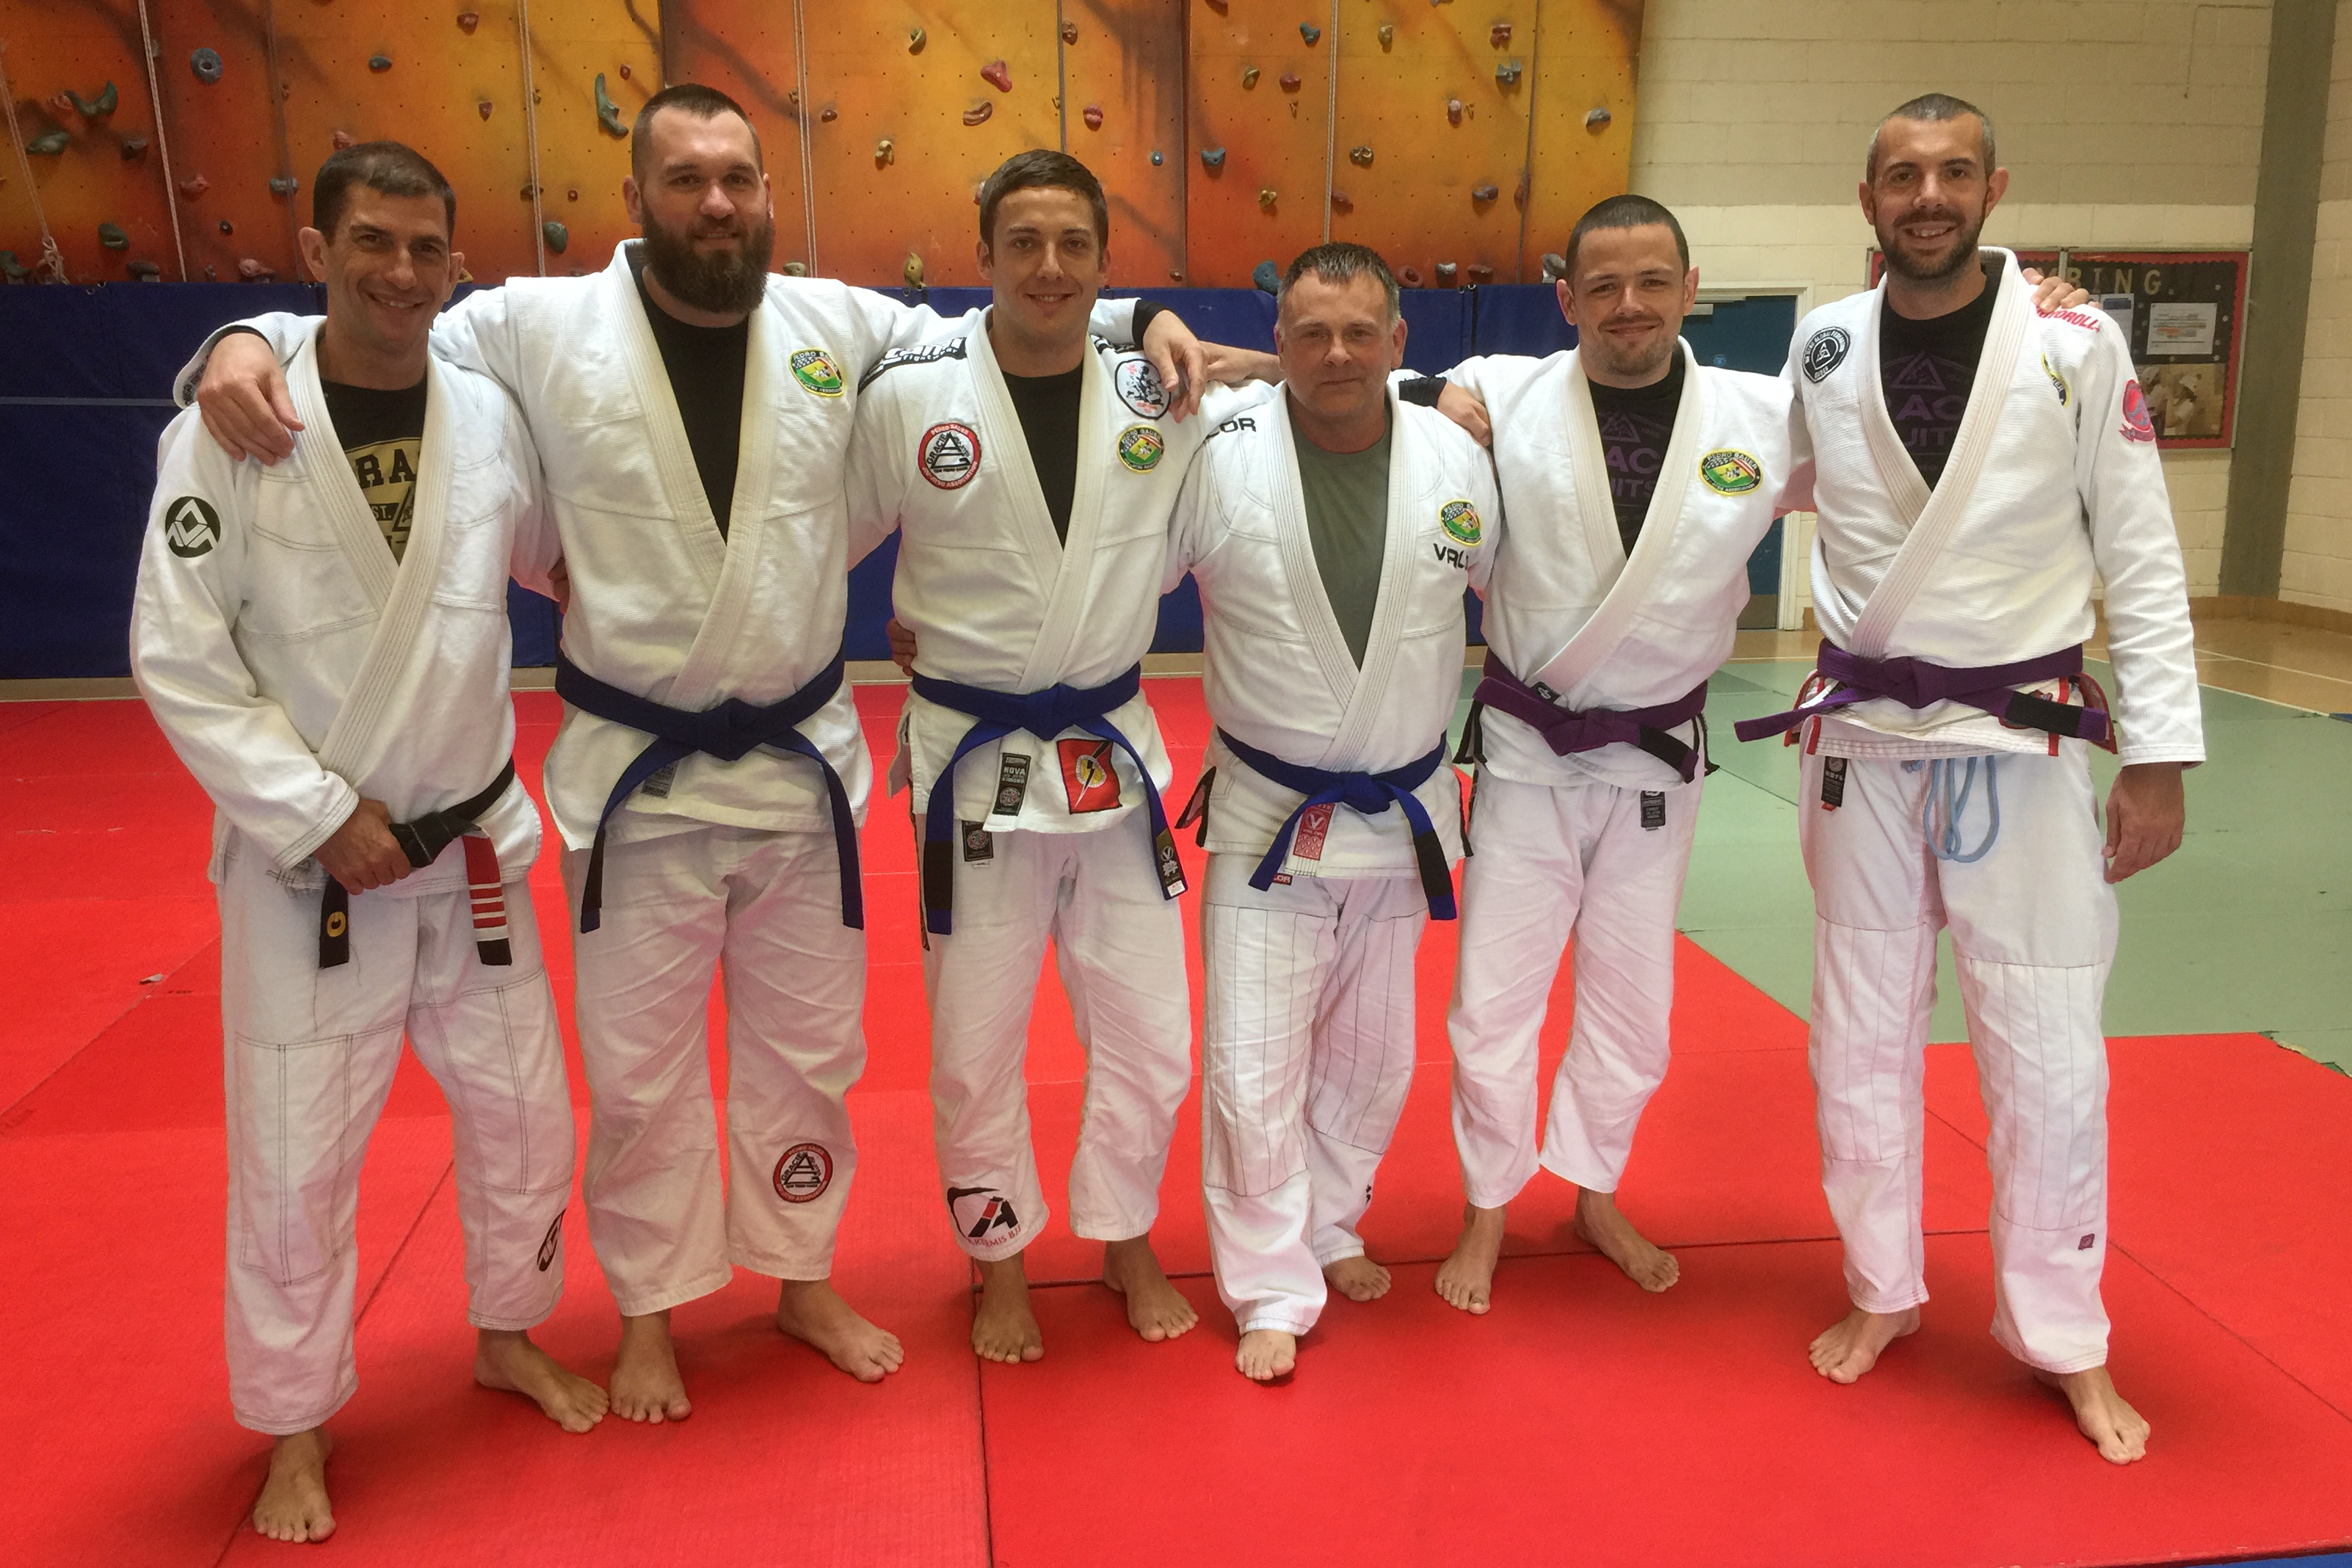 New Blue Belts at Team Pedro Sauer UK! - June 2018